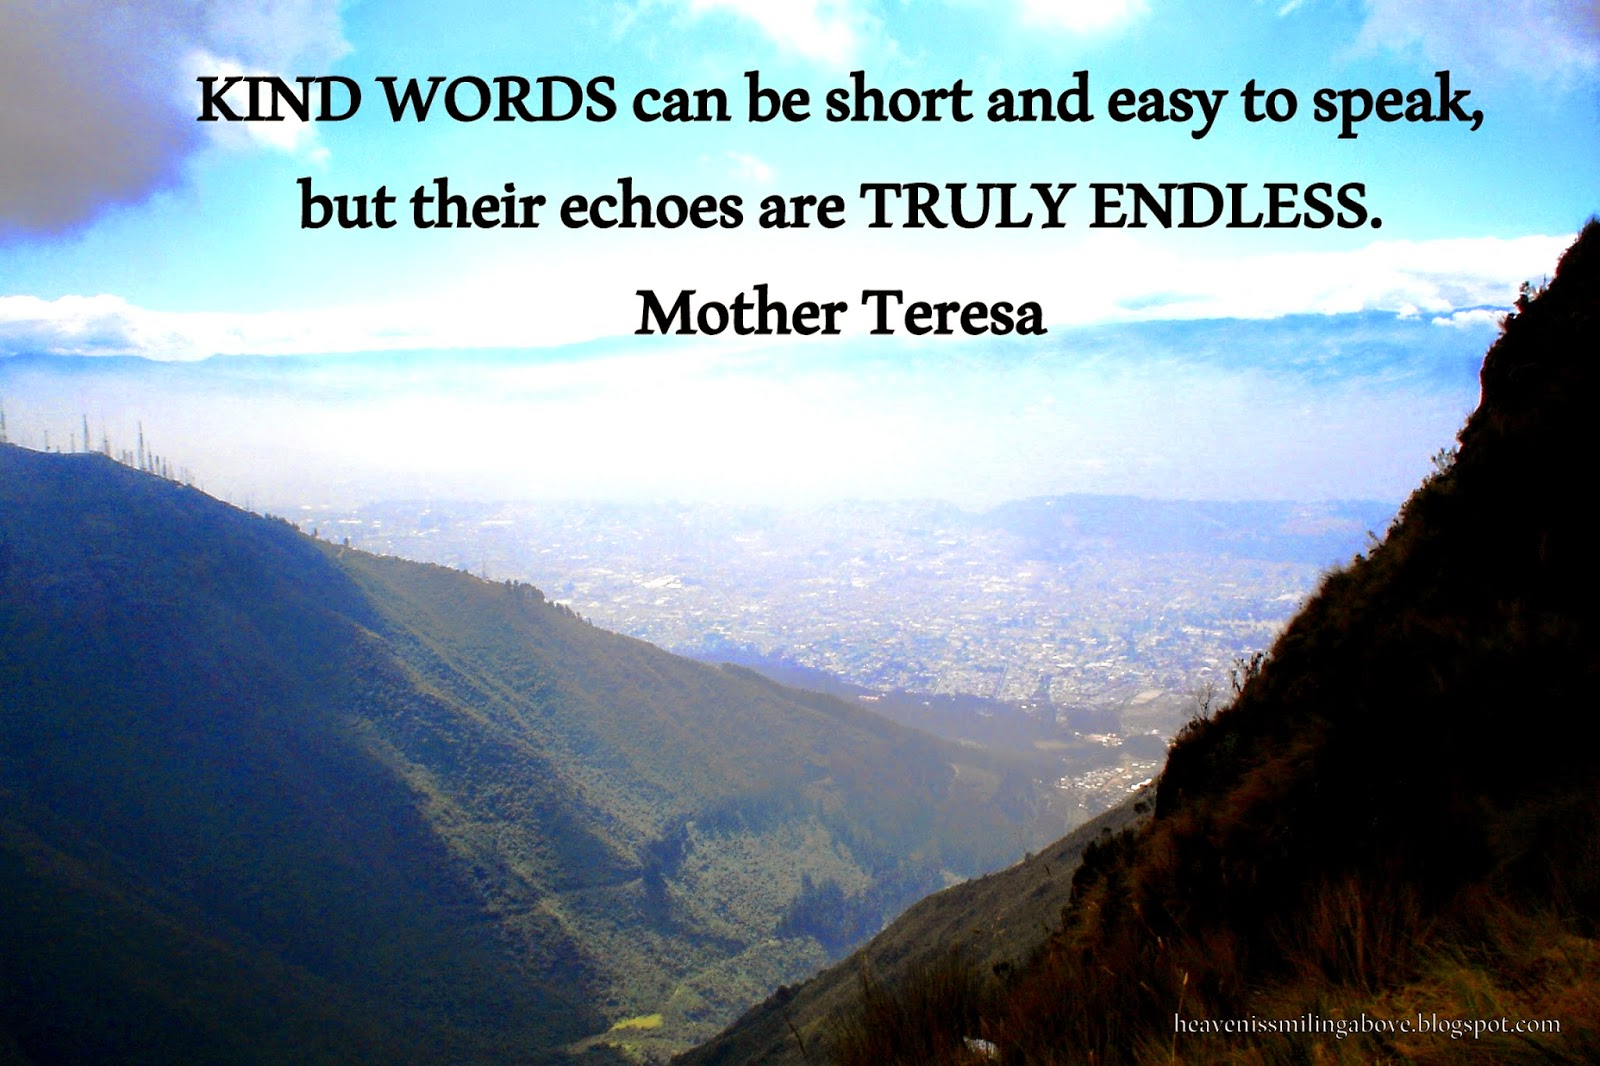 Kind words are truly endless Mother Teresa